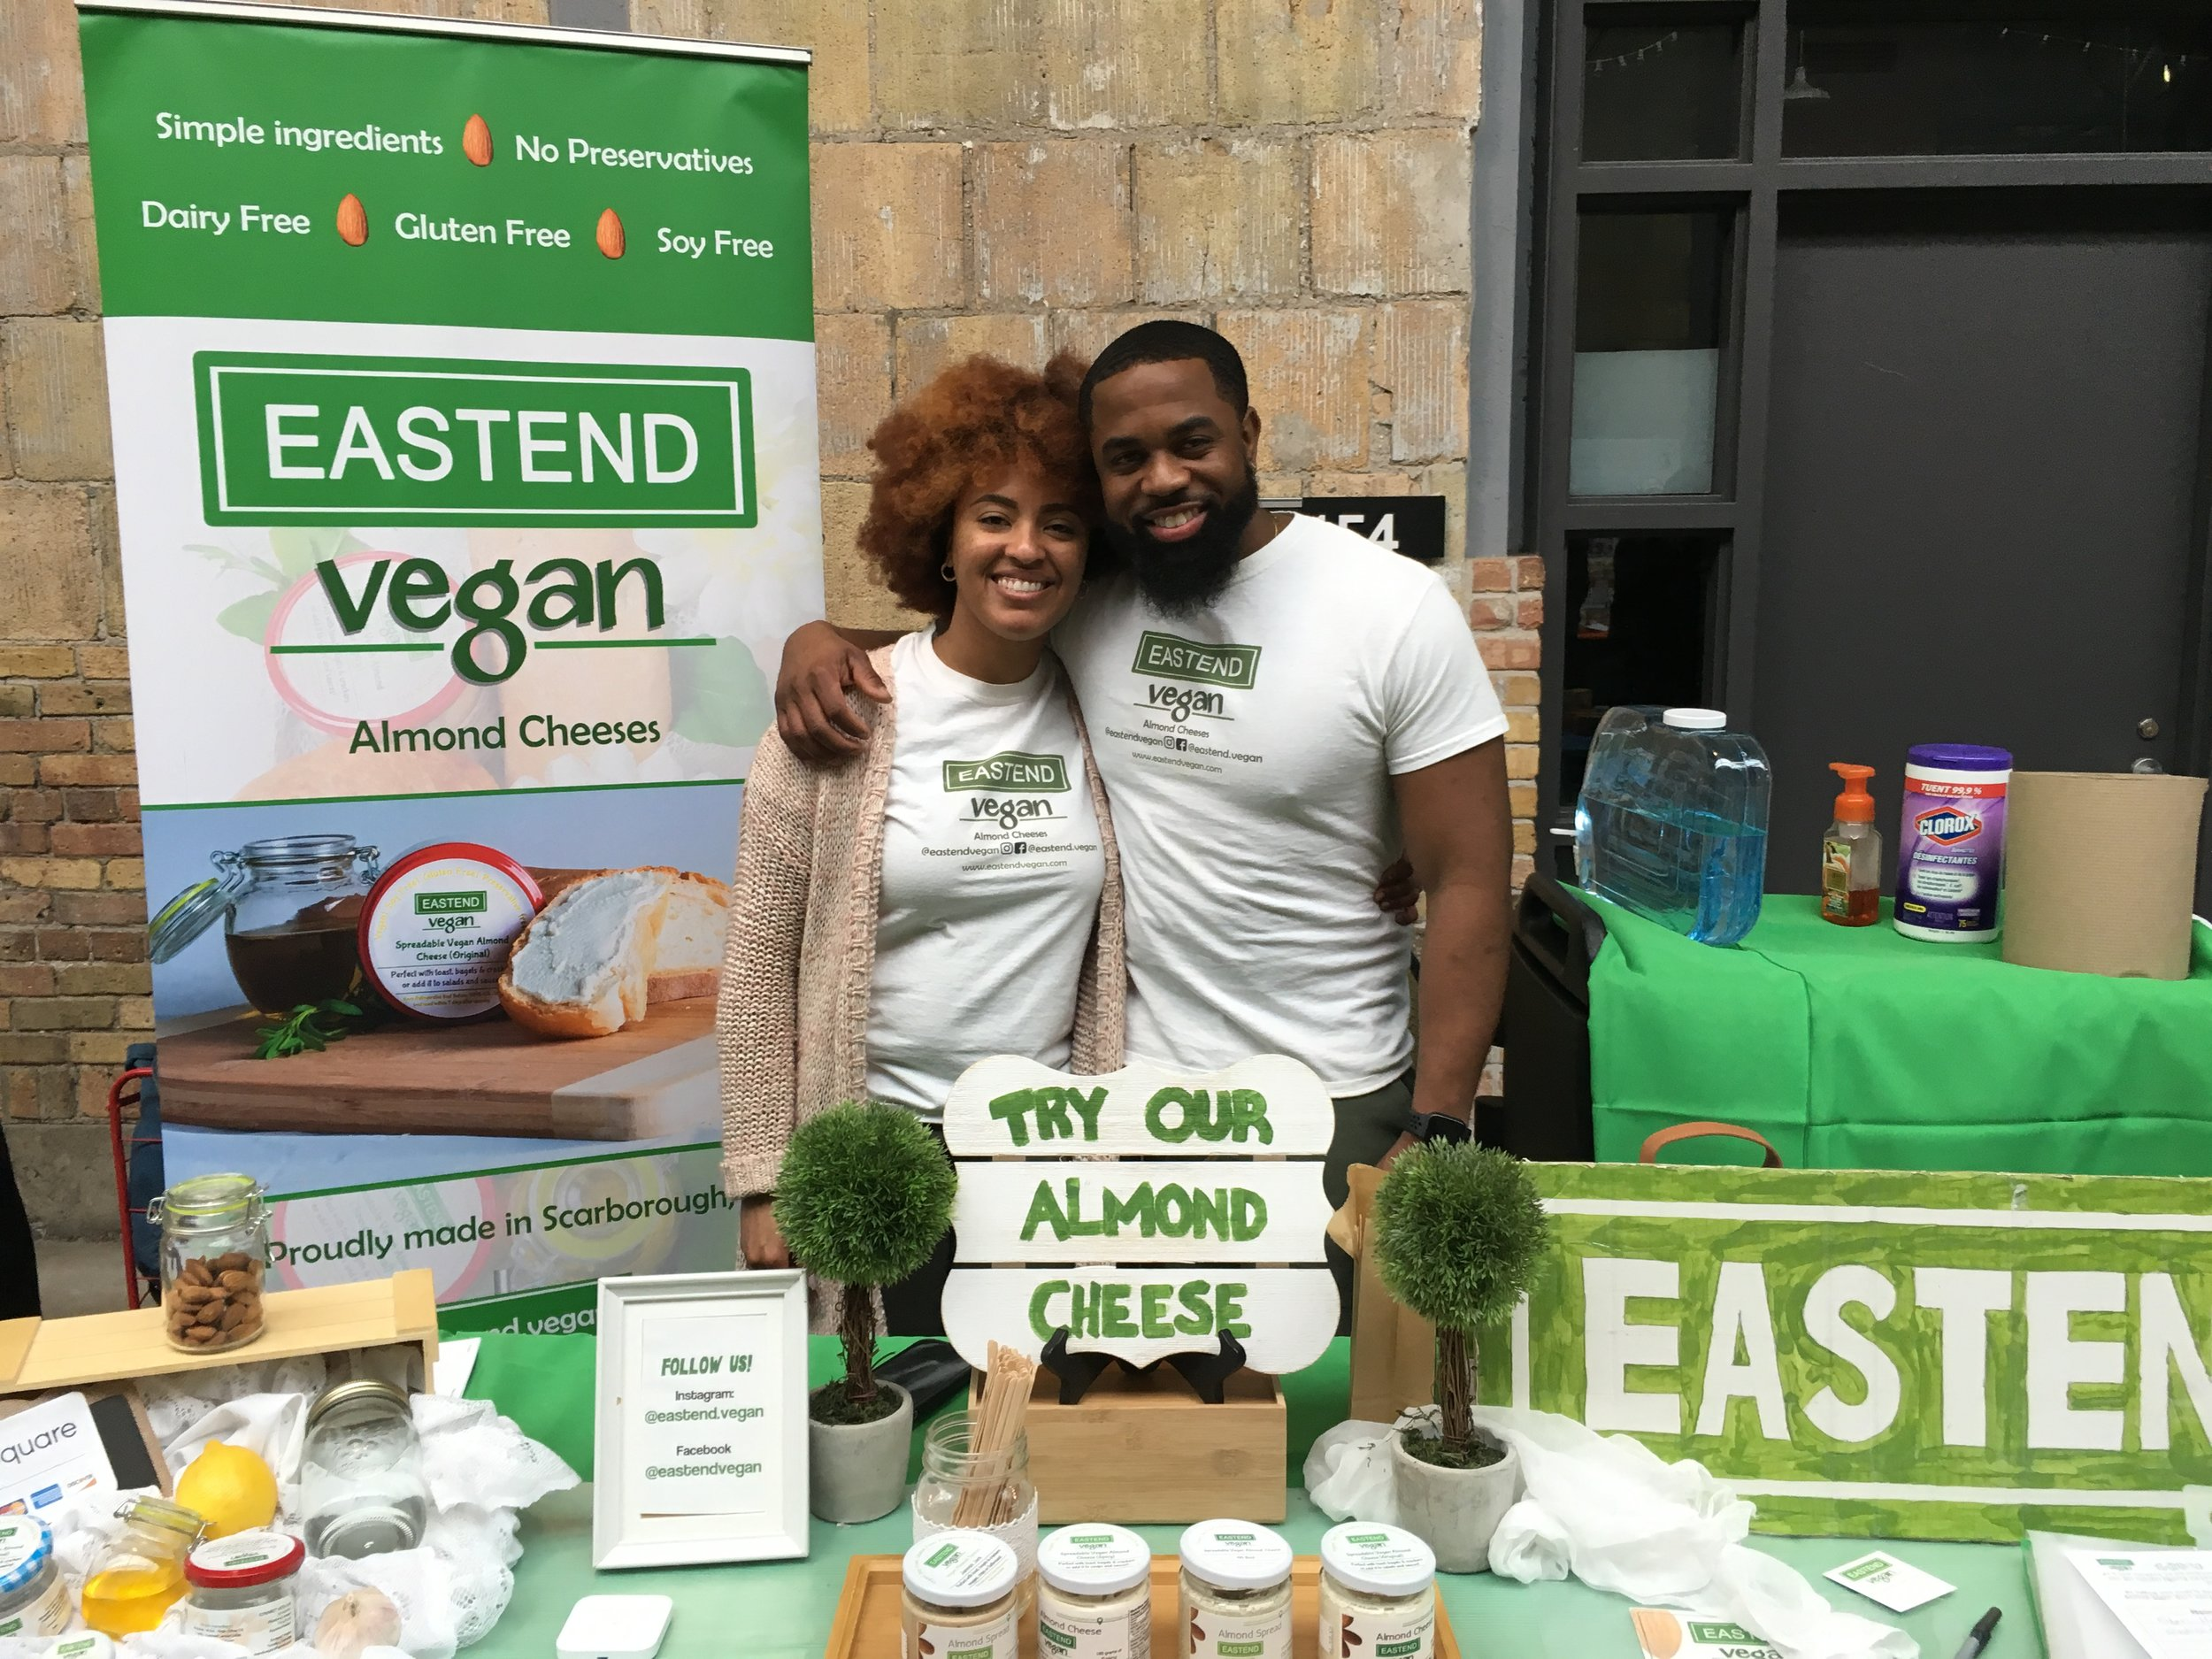 The Eastend Vegan's almond cheese came as a result of founder Melissa James' lactose sensitivity. She said that it is a light and healthy alternative to regular cheese. (CanCulture/Severina Chu)